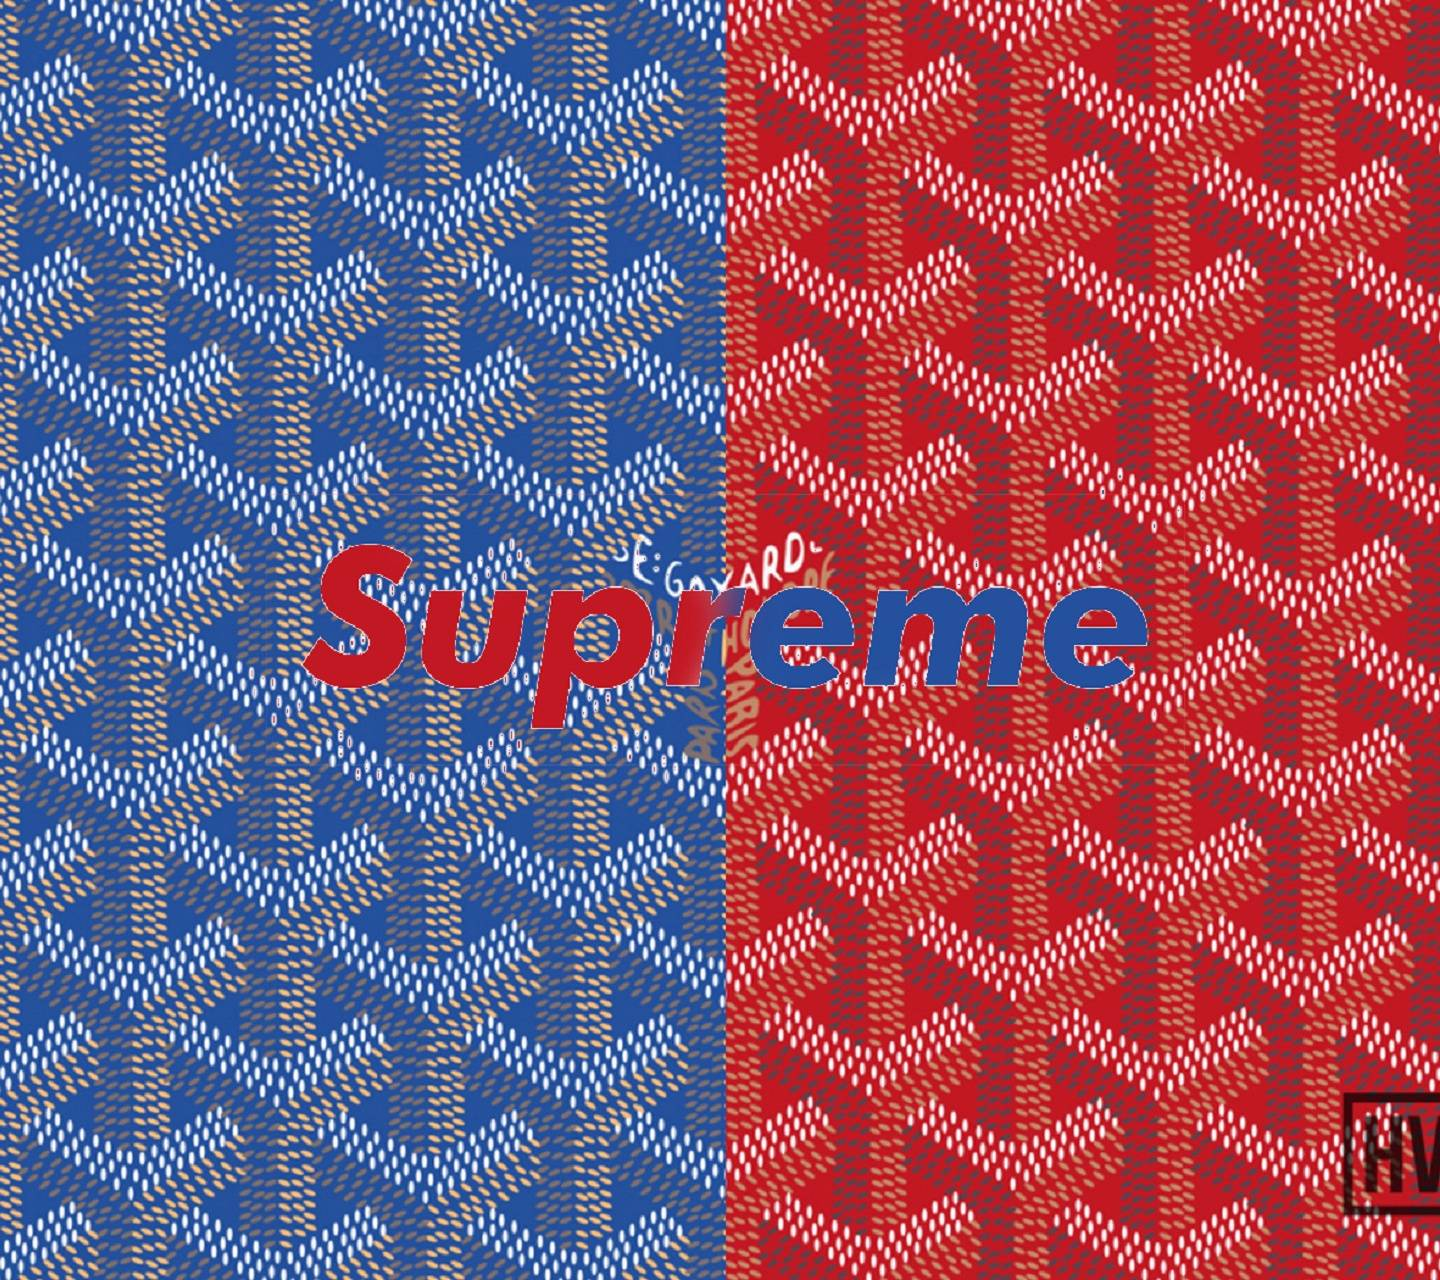 1440x1280 Supreme X Goyard Wallpaper by zain_786333 - af - Free on ZEDGE™